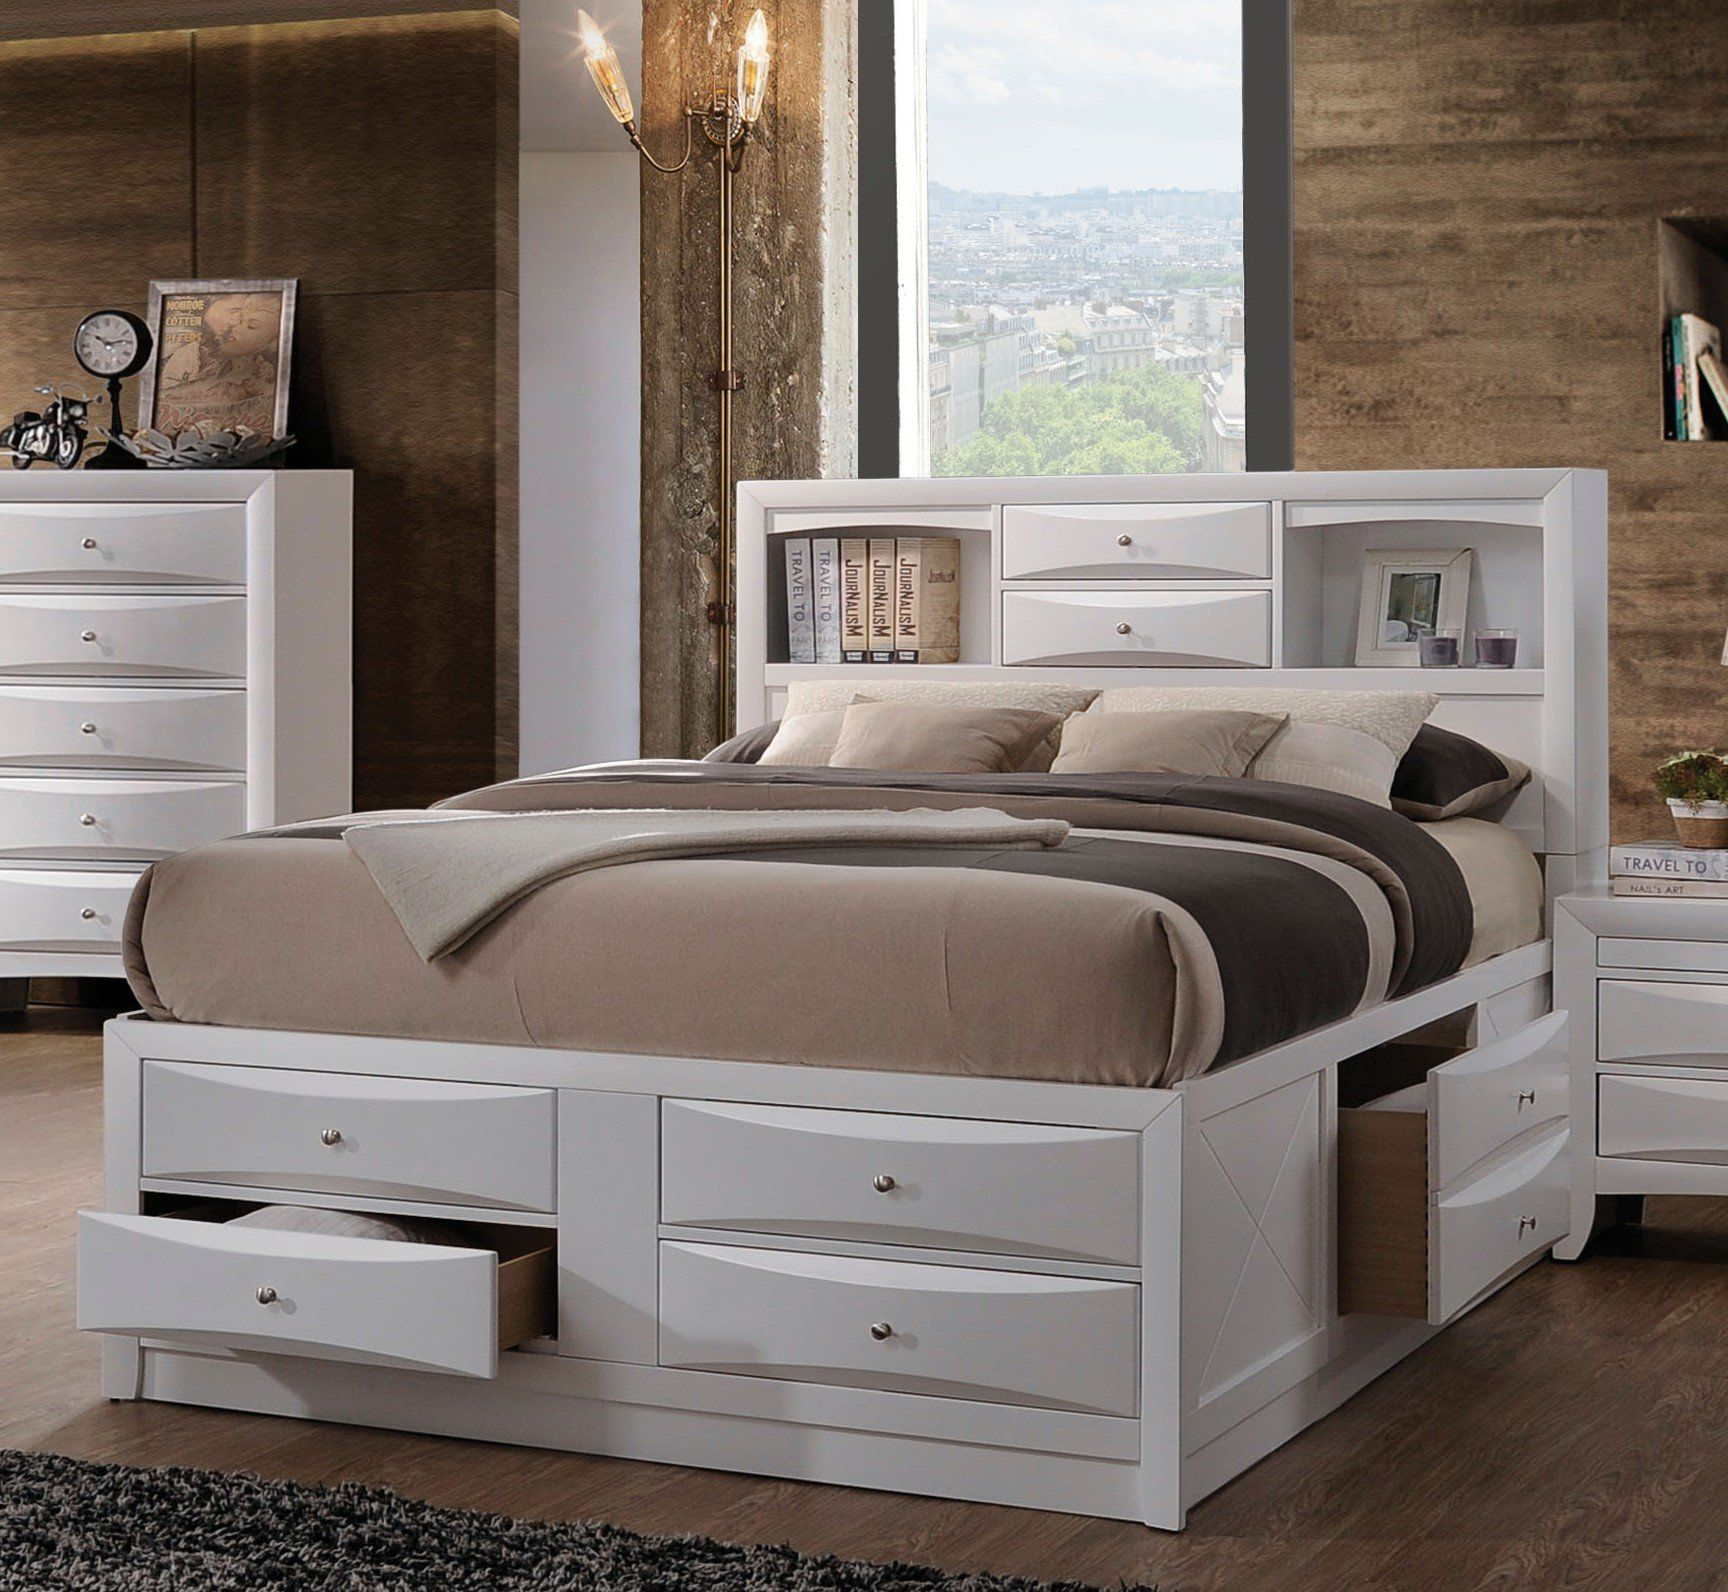 Acme Ireland White Bookcase Full Storage Bed With Drawers